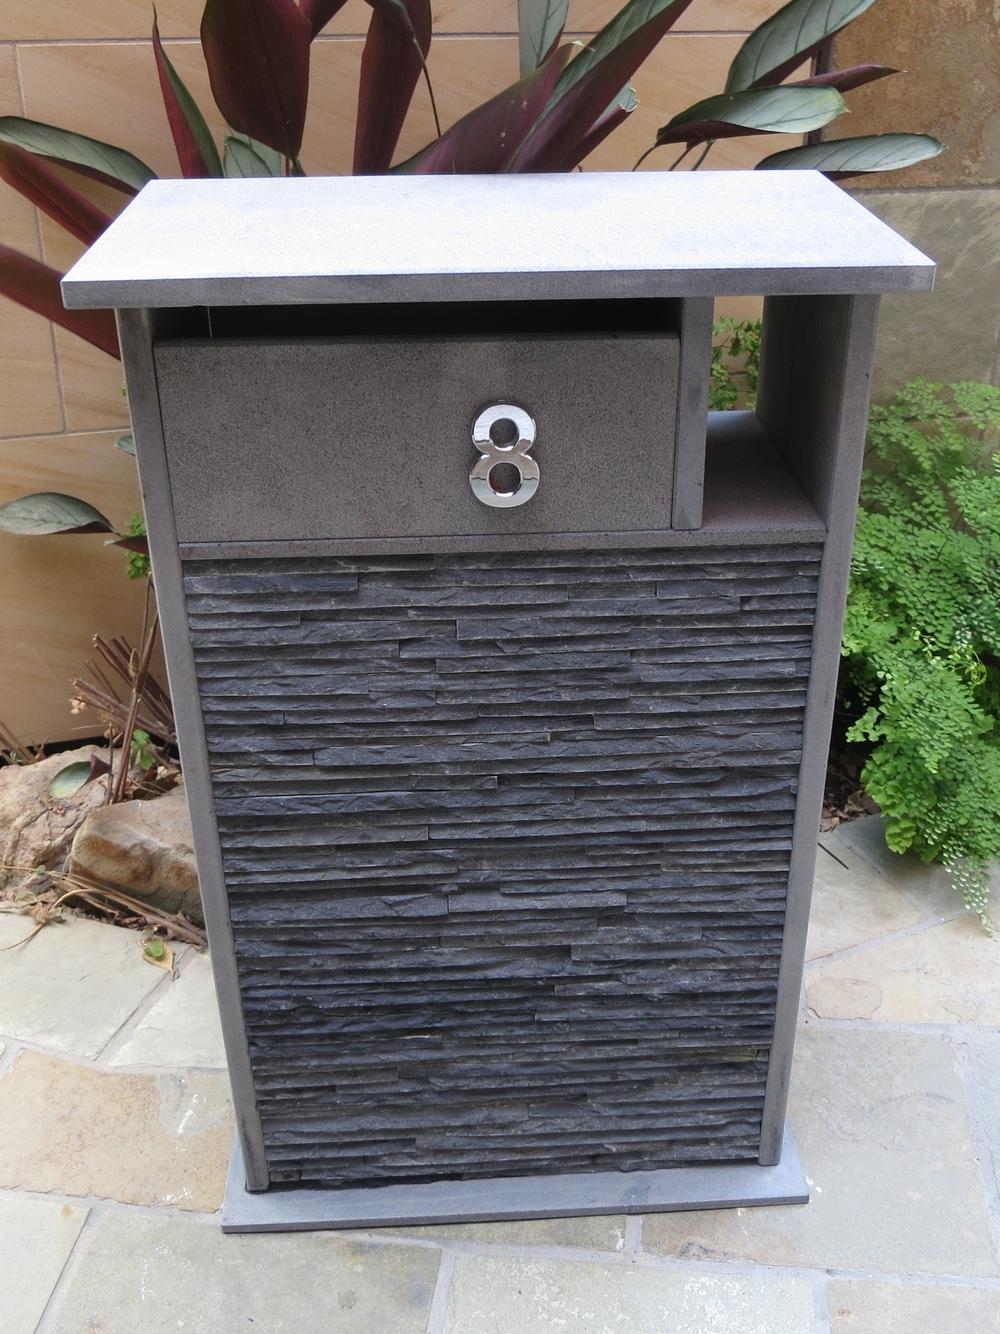 13. custom made letterbox one pc unit pick up from store only (60kg unit), price depends on Hight $561 to $661